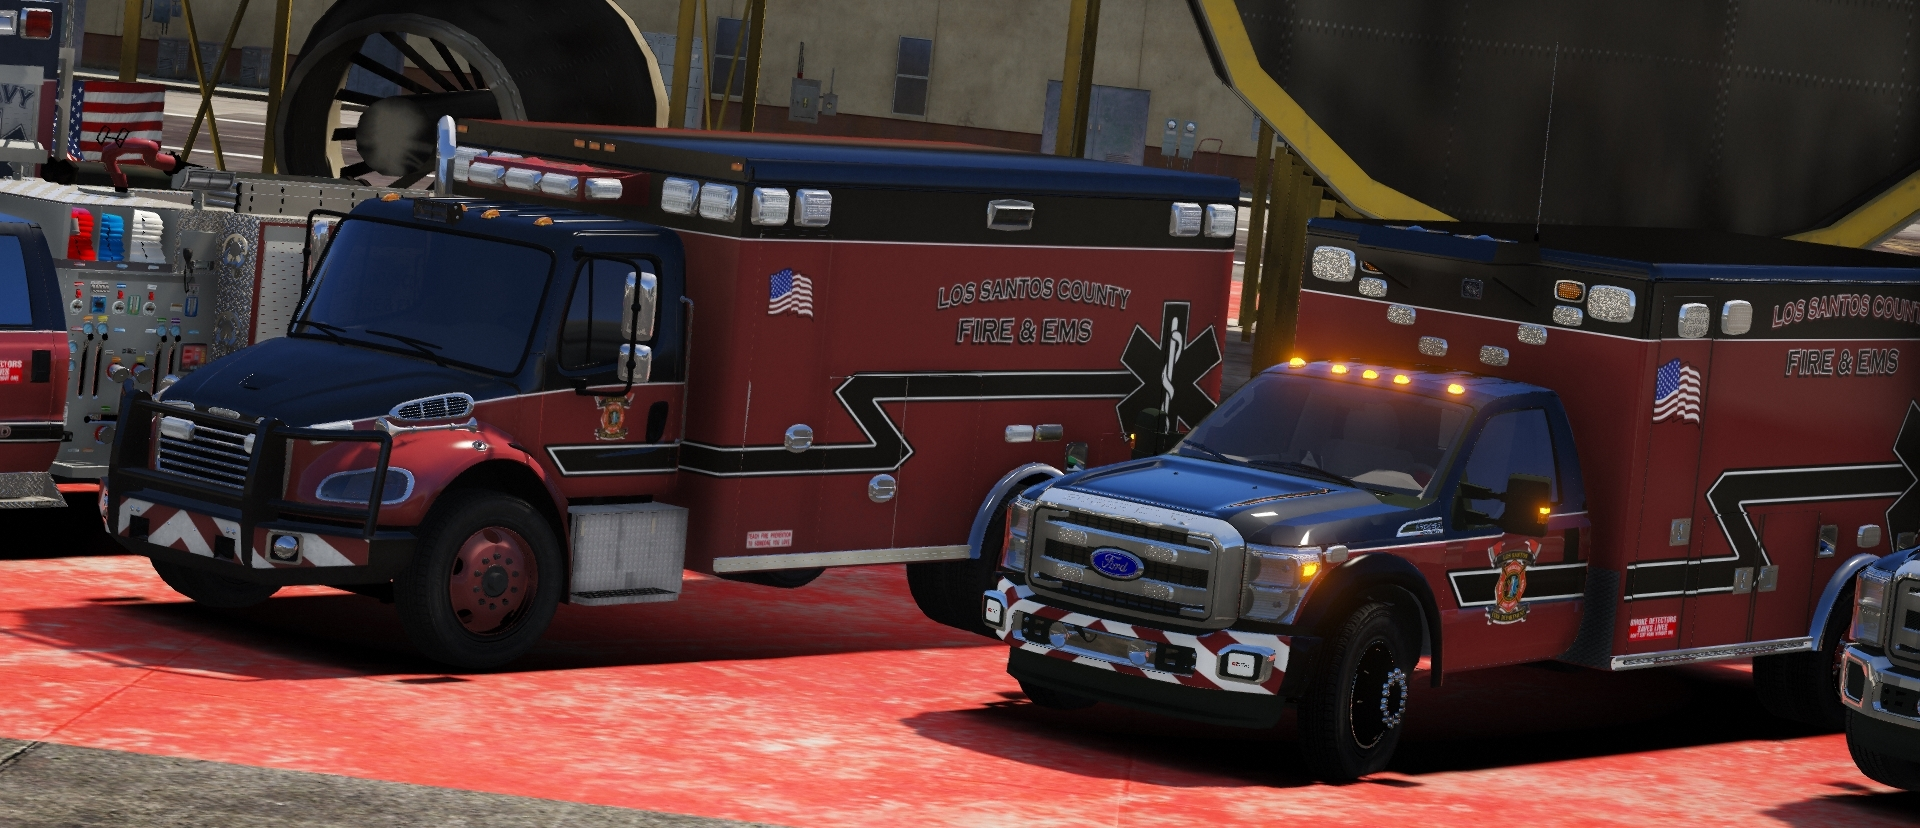 Los Santos Department of Public Safety | Police | Fire/EMS